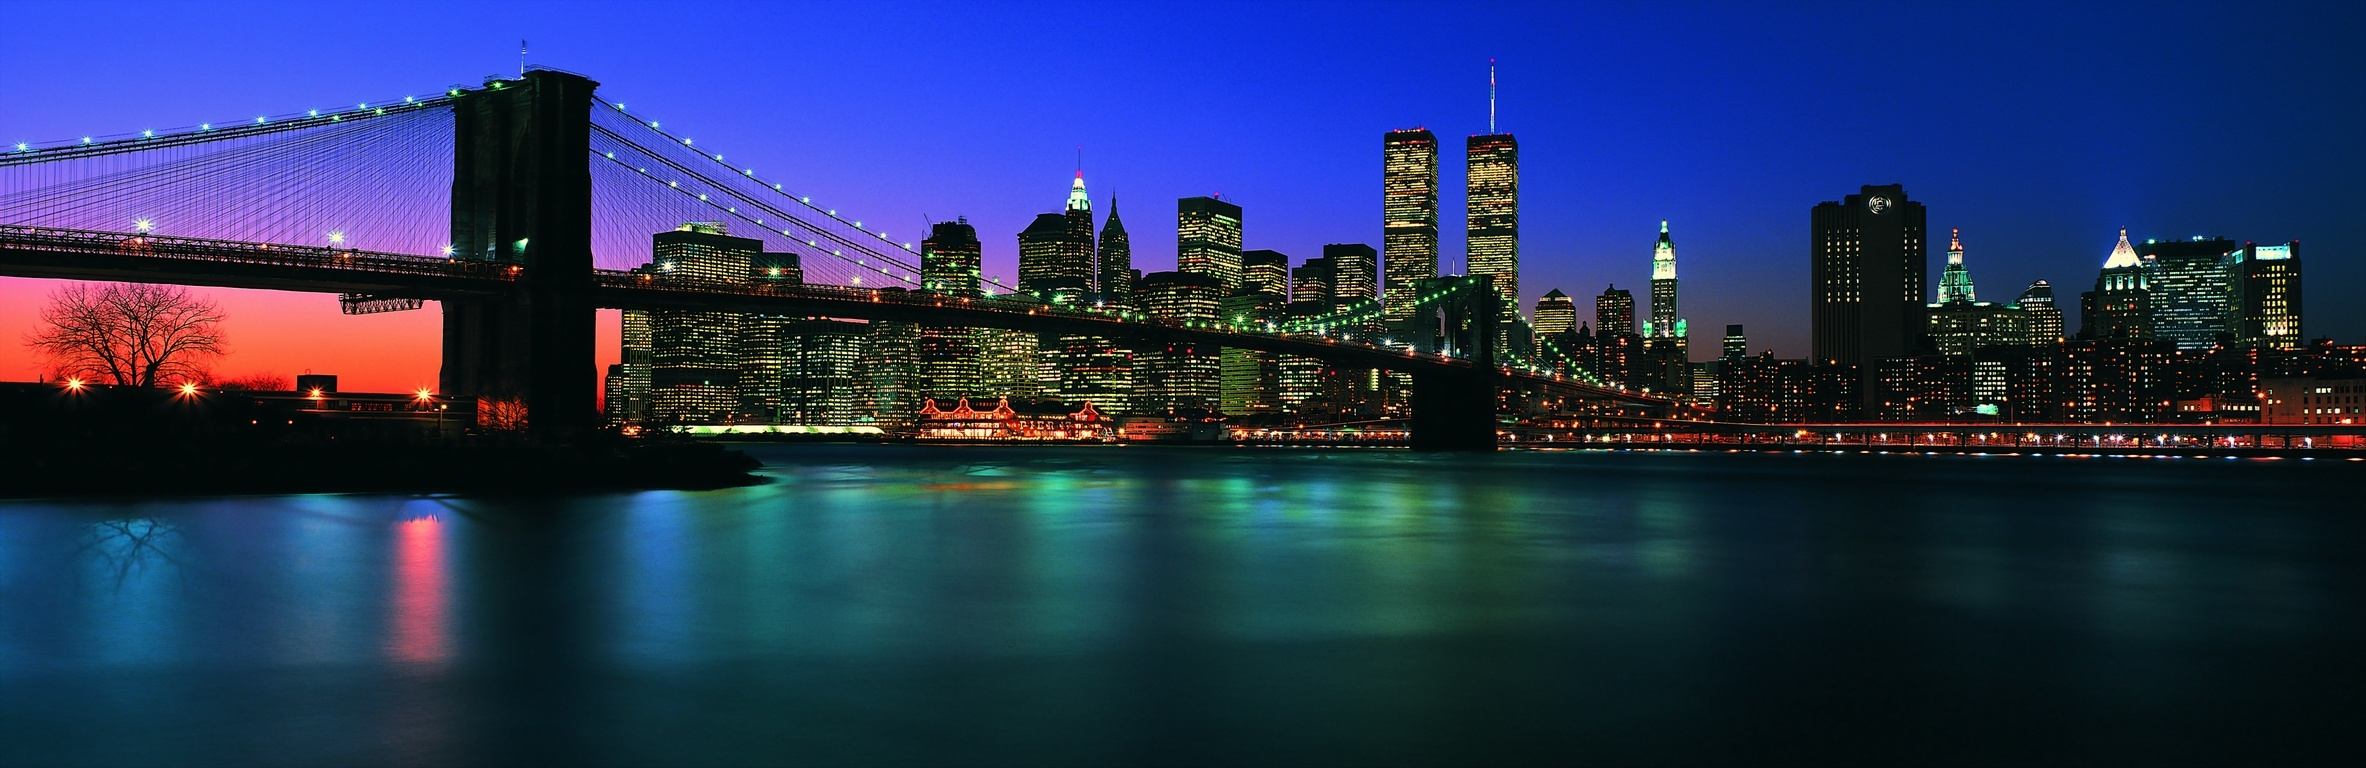 16 Cities Of Usa With Astonishing Night Views  U0026 Skylines